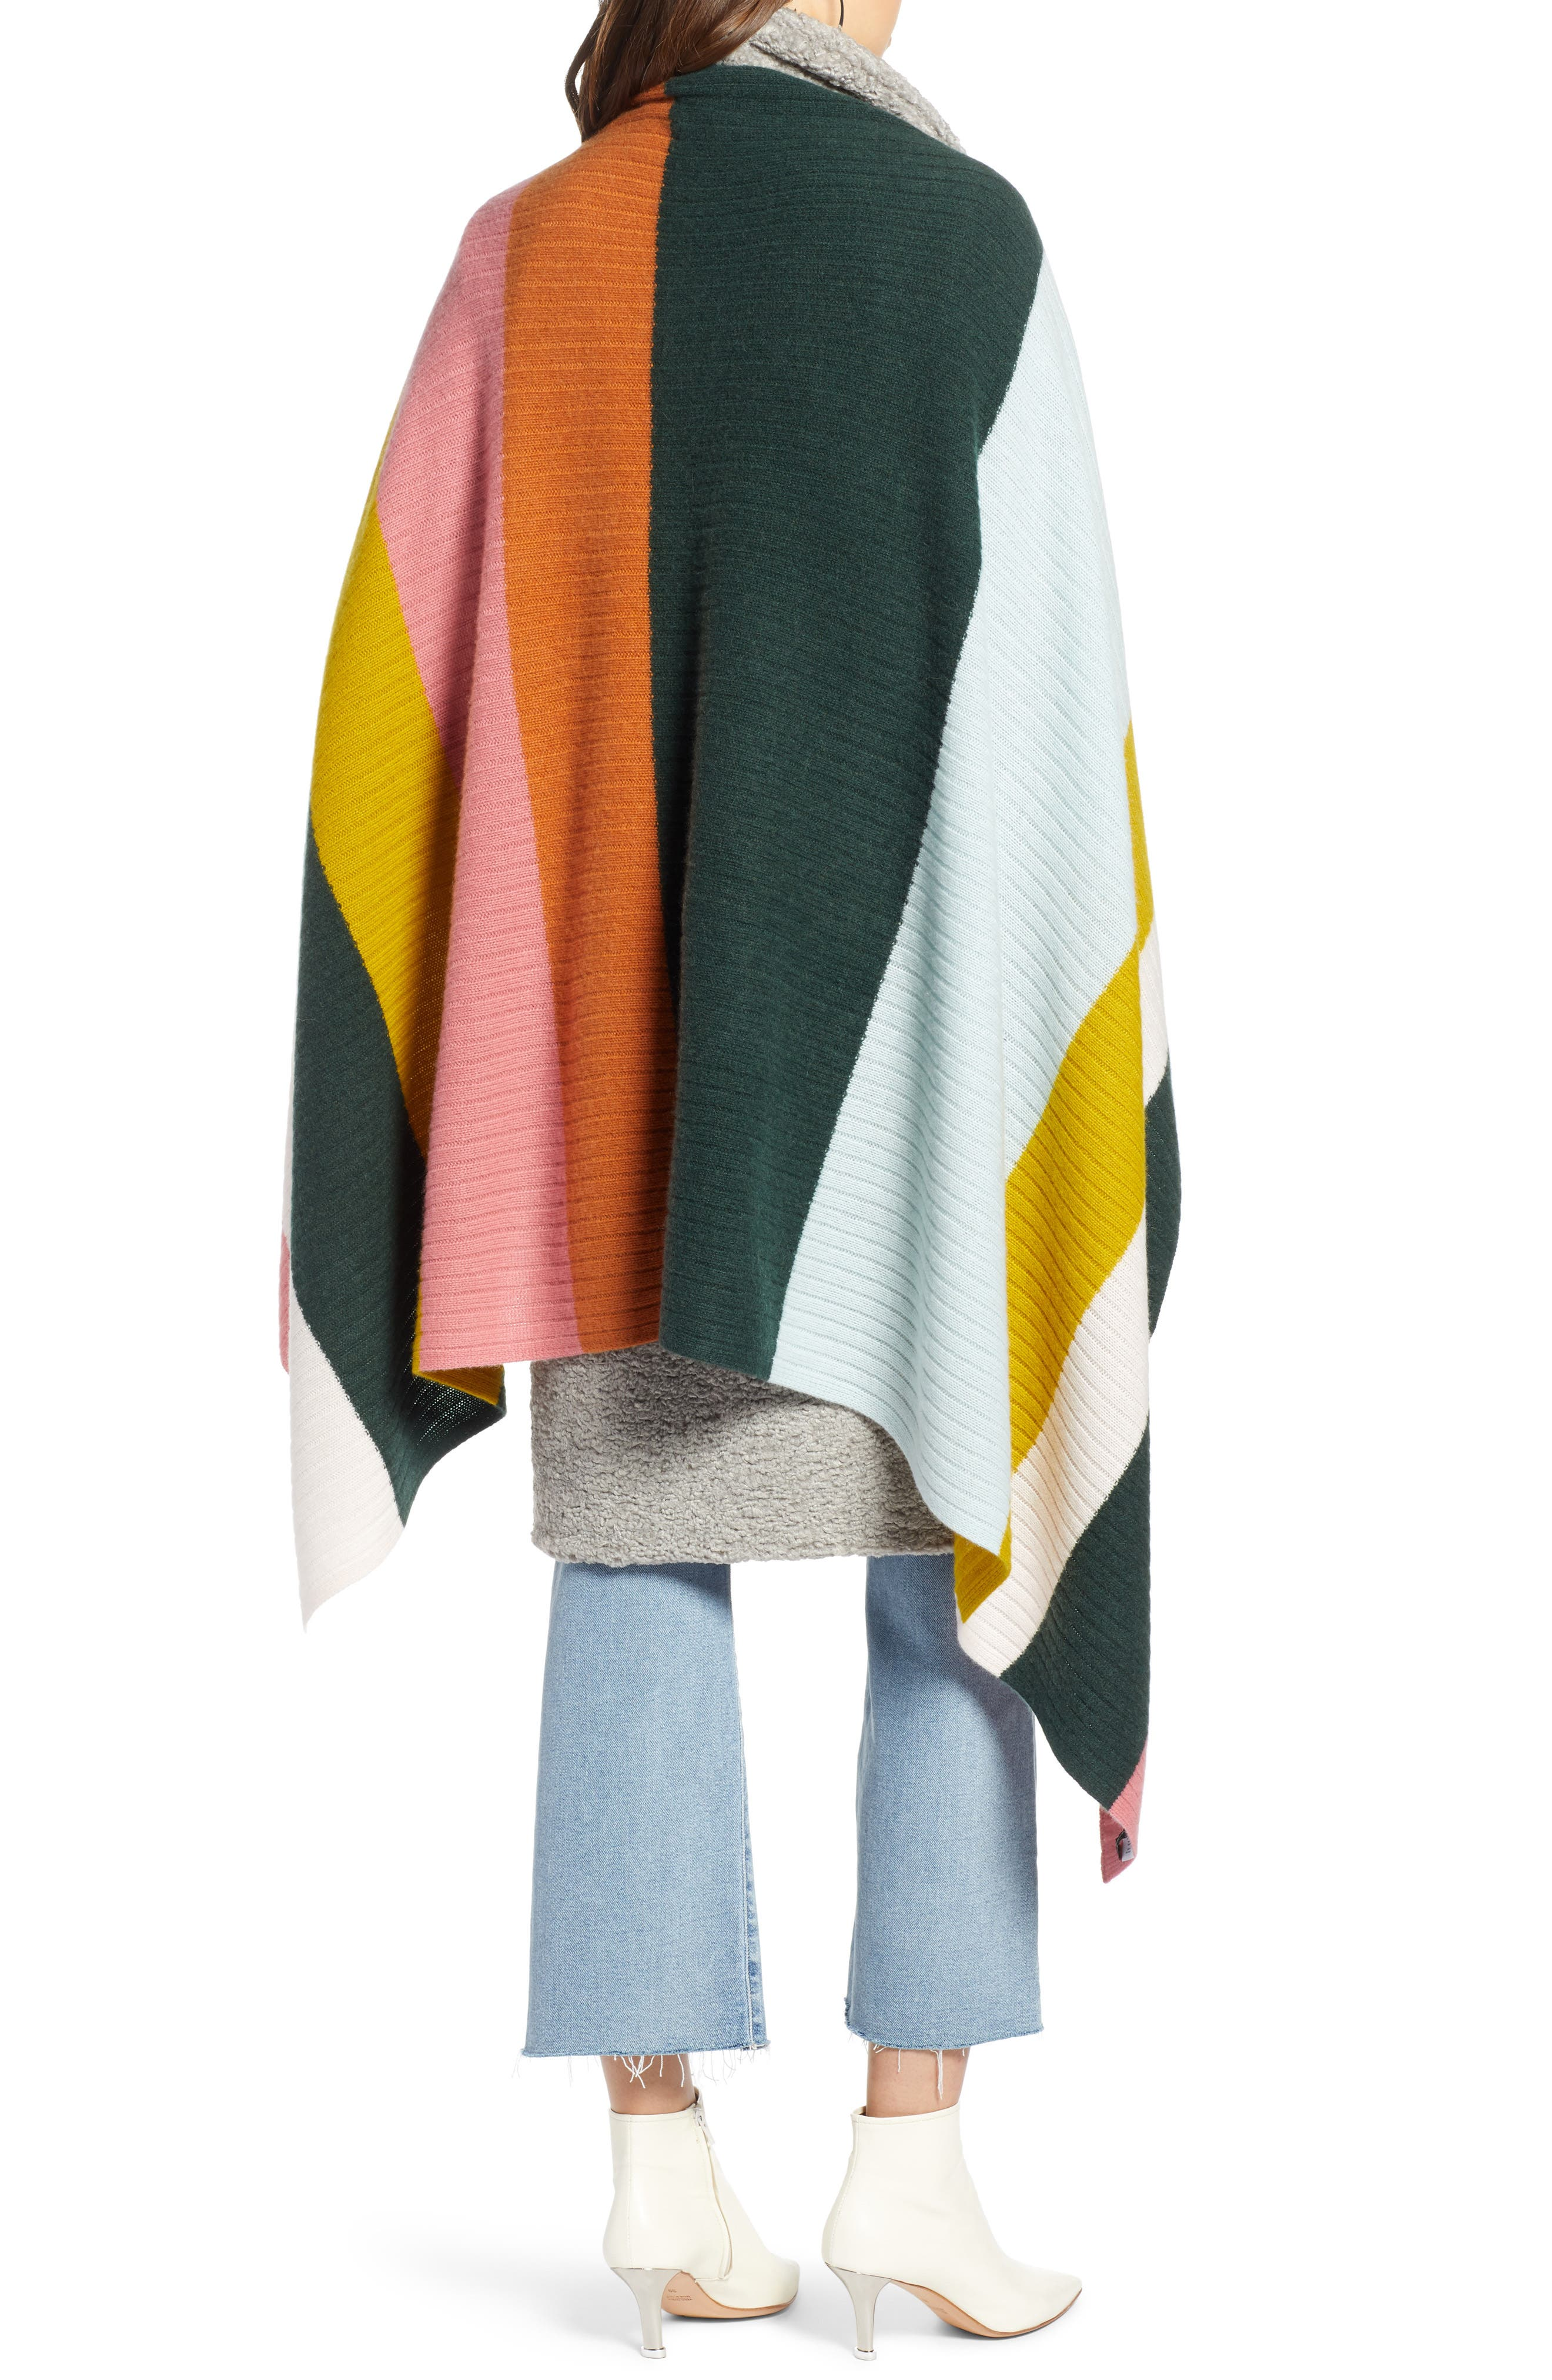 x Atlantic-Pacific Stripe Cashmere Wrap,                             Alternate thumbnail 3, color,                             660